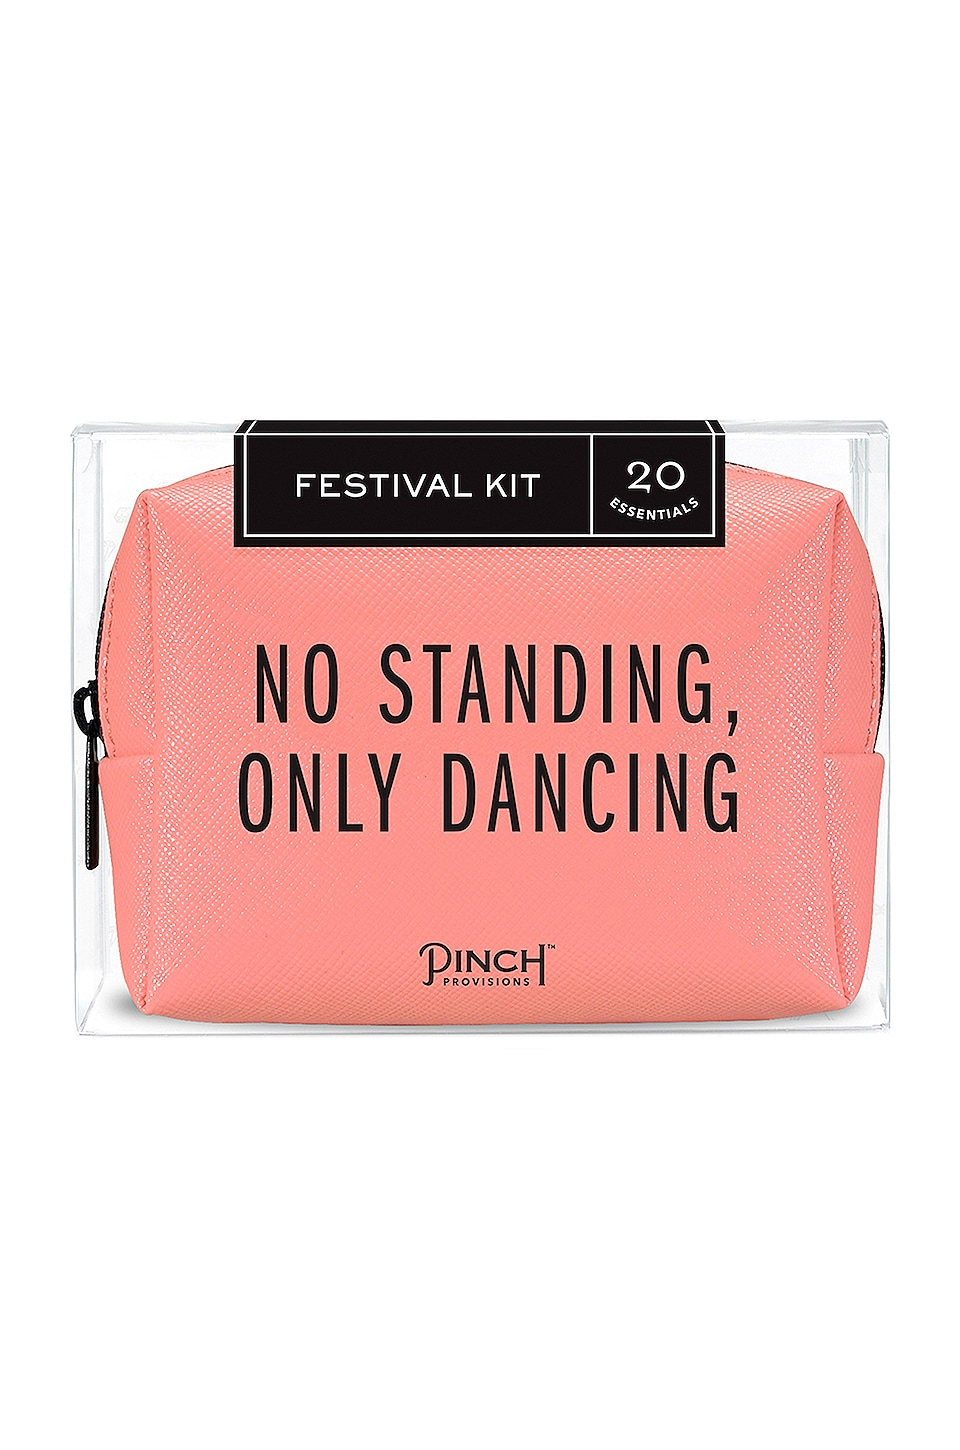 PINCH PROVISIONS Festival Kit in Beauty: Na